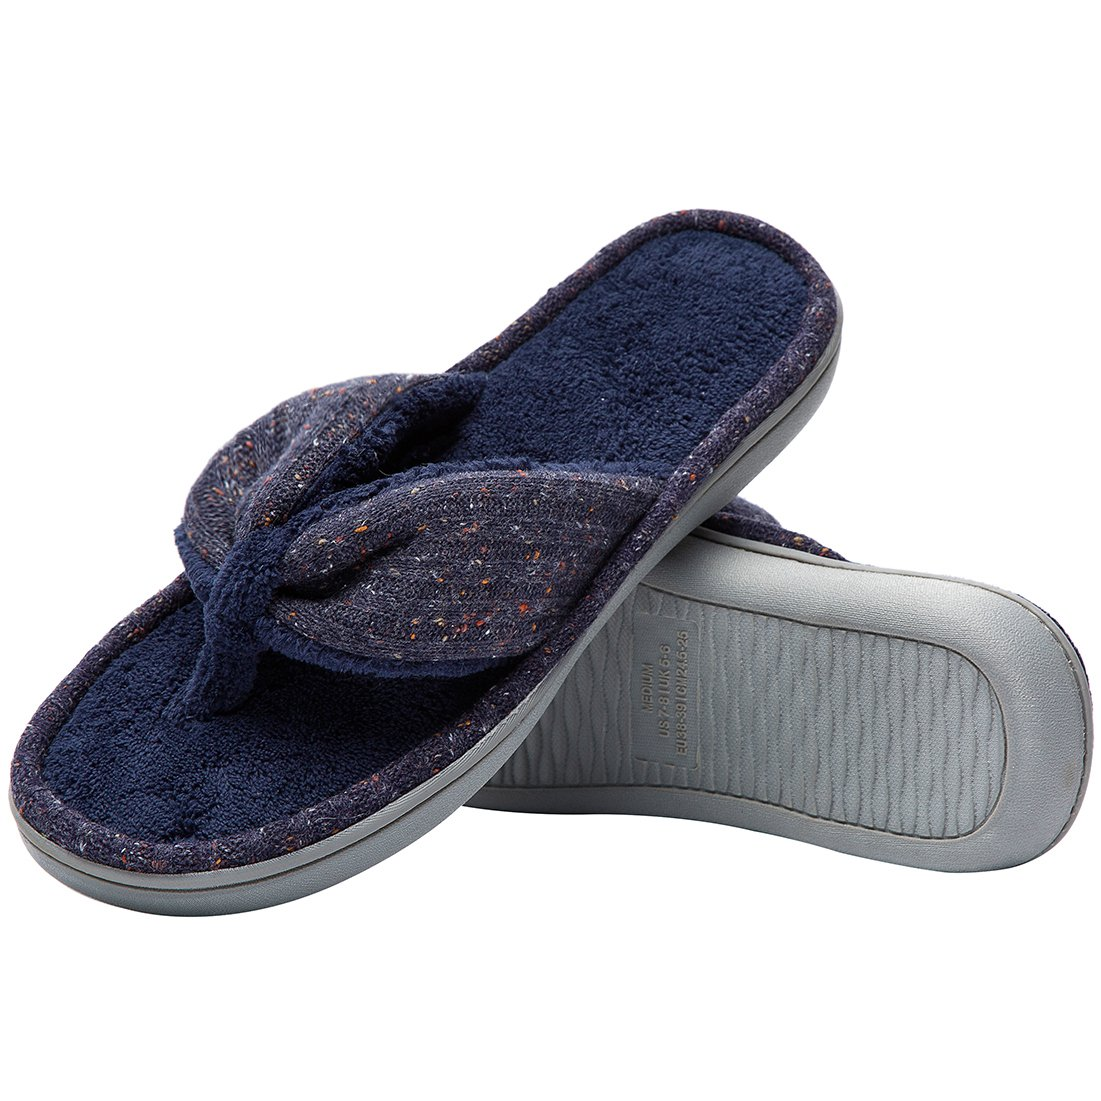 Women's Soft & Comfy Knitted Plush Fleece Lining Memory Foam Spa Thong Flip Flops House Slippers (Large/9-10 B(M) US, Navy Blue) by HomeTop (Image #3)